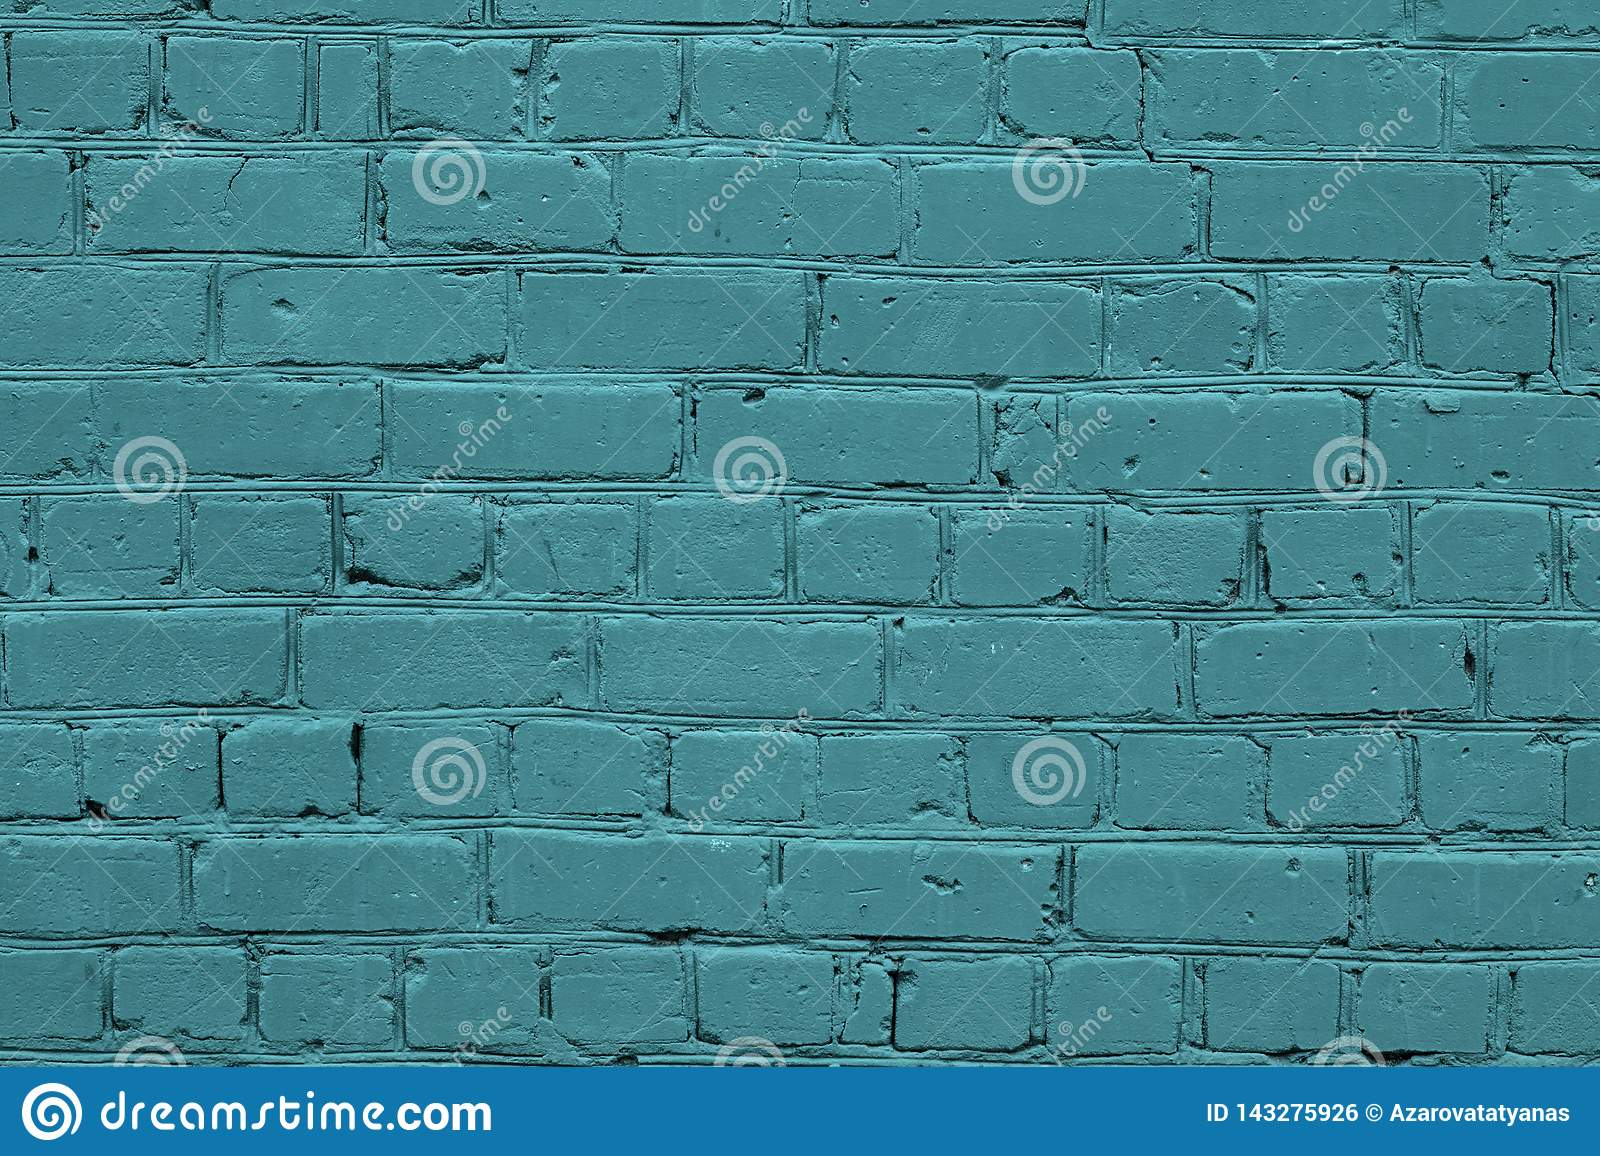 Texture of a turquoise brick wall. Green texture brick wall. Turquoise brick wall texture background. Blue stone background.